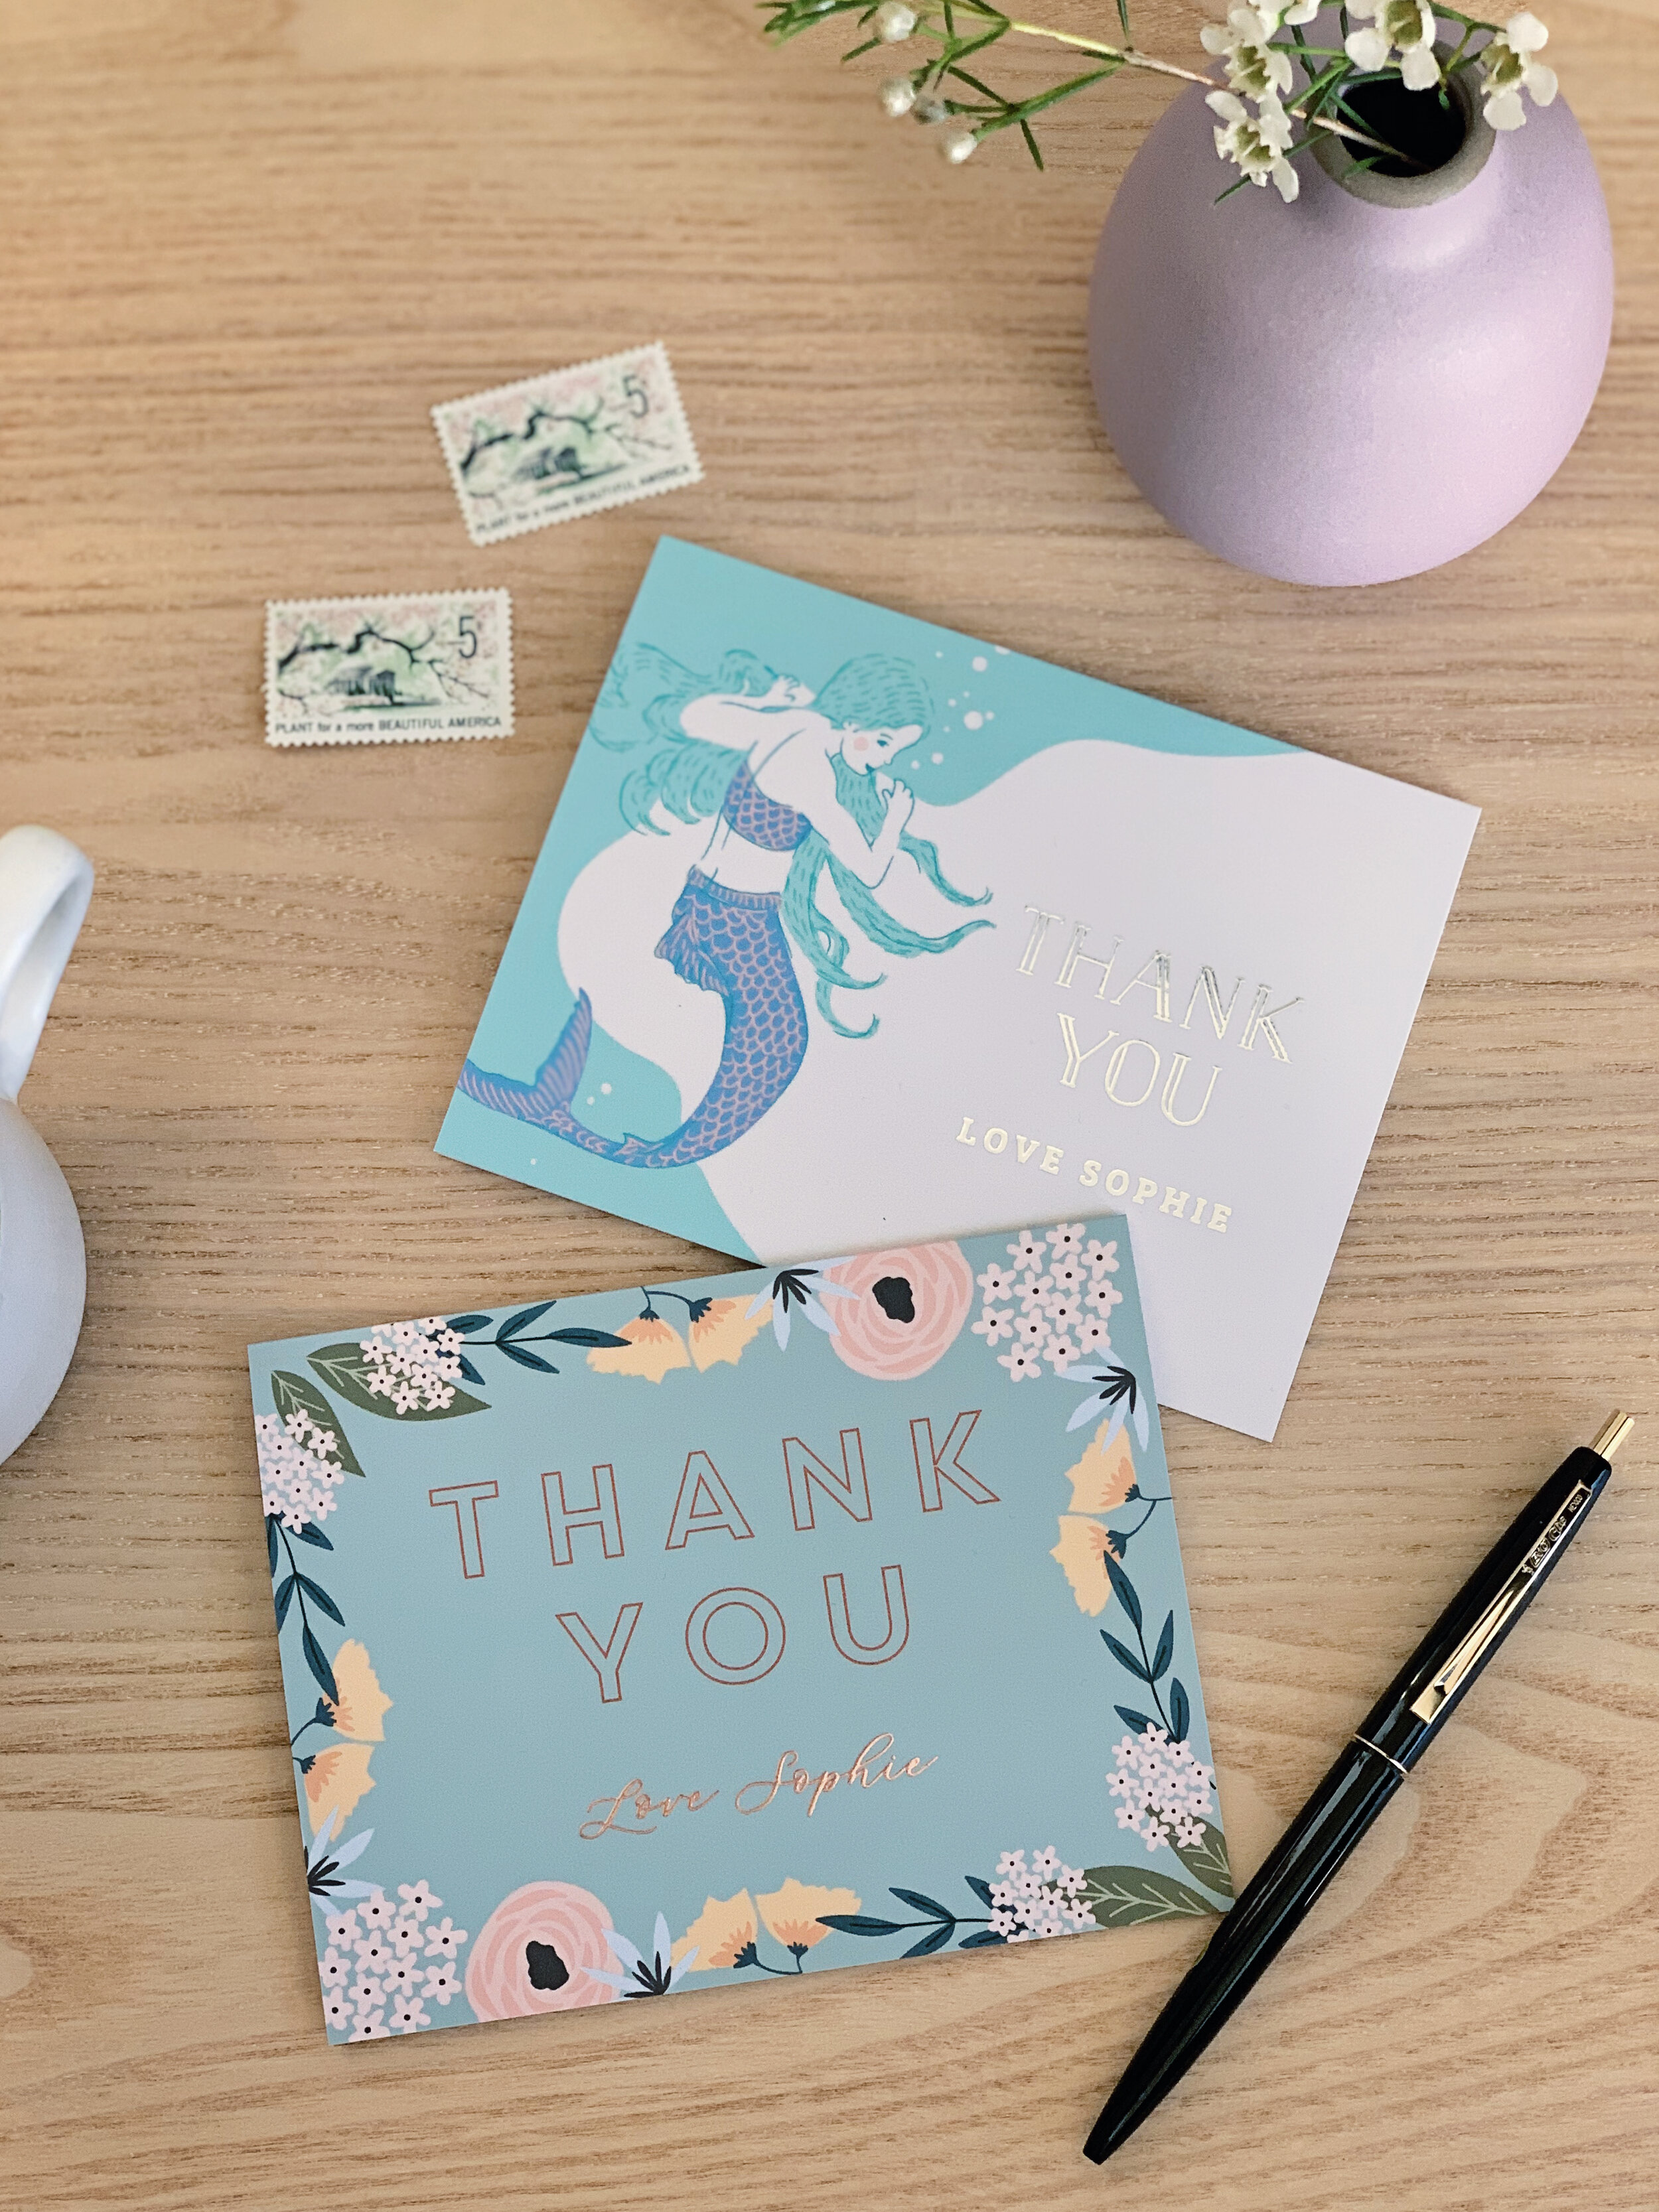 Creating Customized Thank You Cards With Basic Invite | Sponsored Post